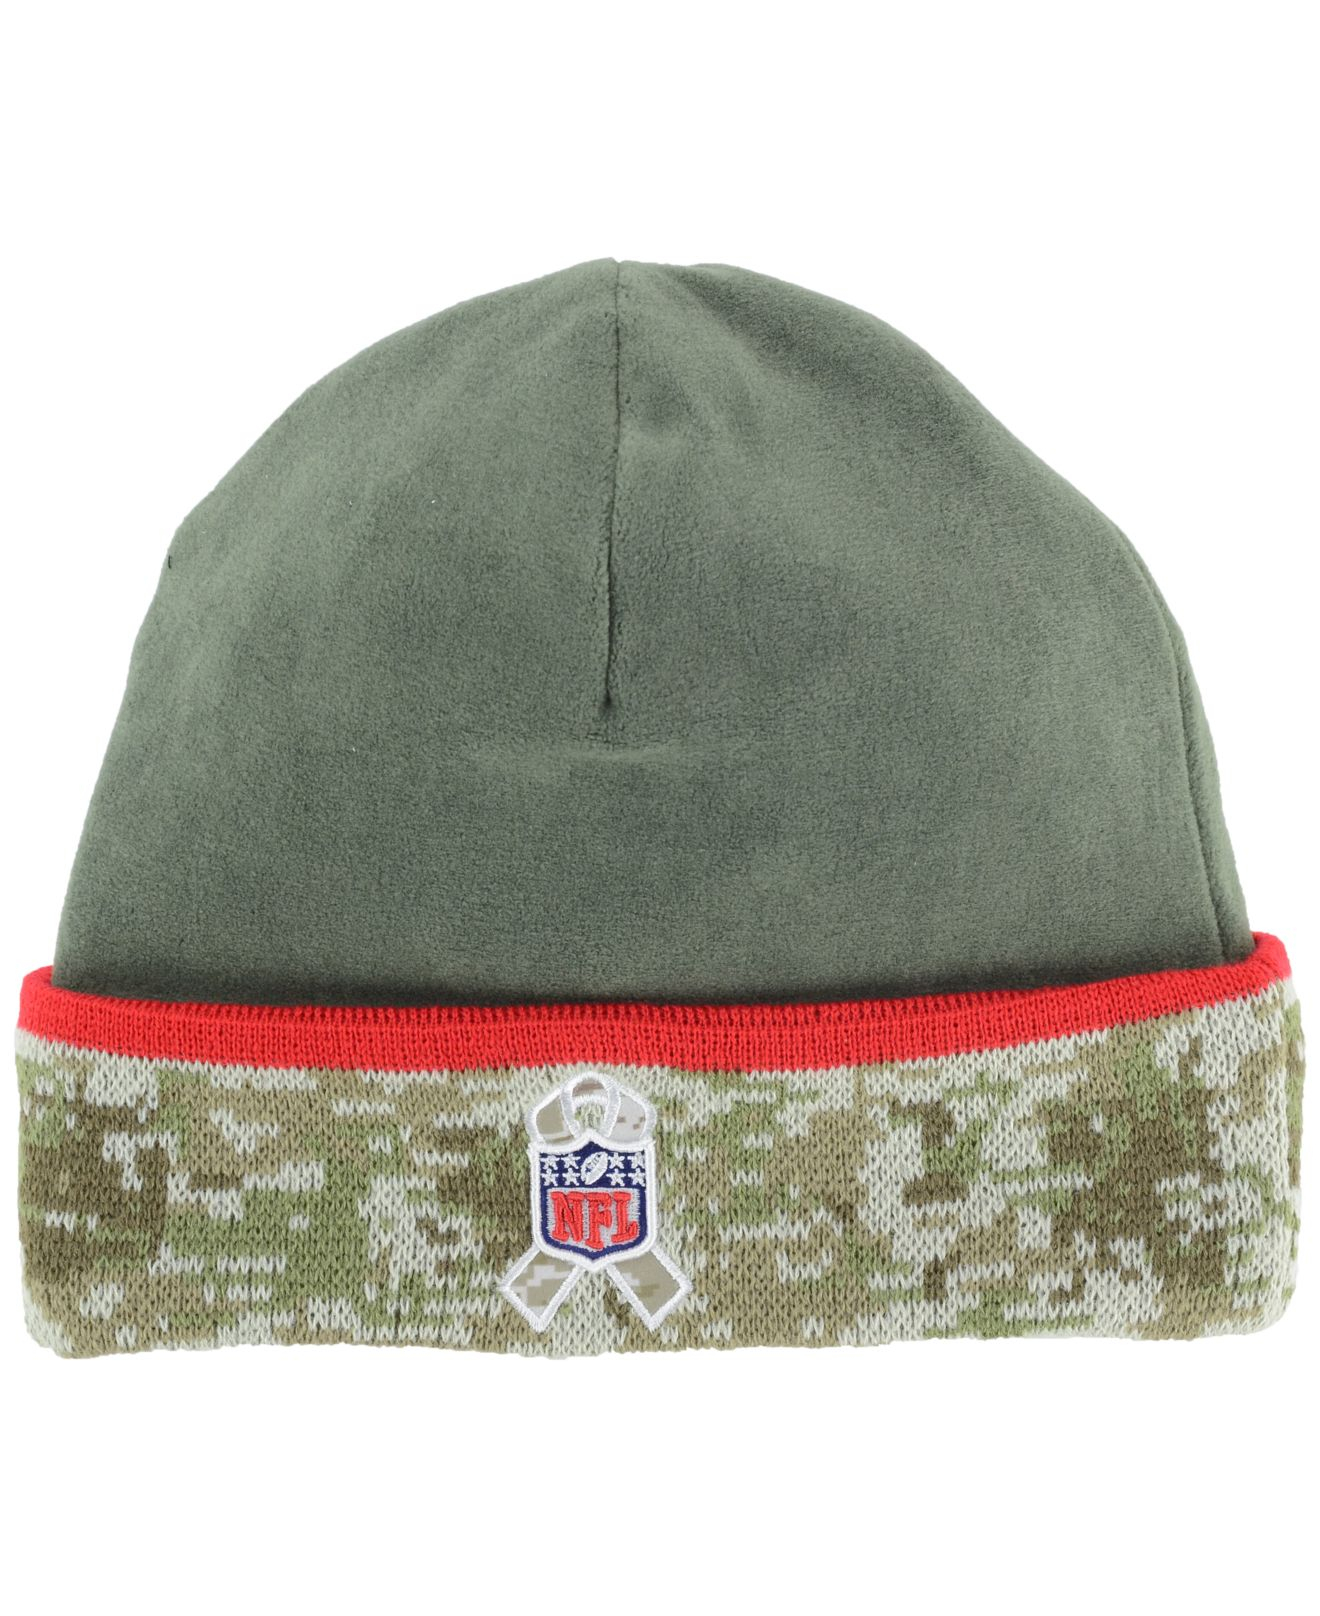 Lyst - Ktz Tampa Bay Buccaneers Salute To Service Knit Hat in Green ... 5d939a5f232